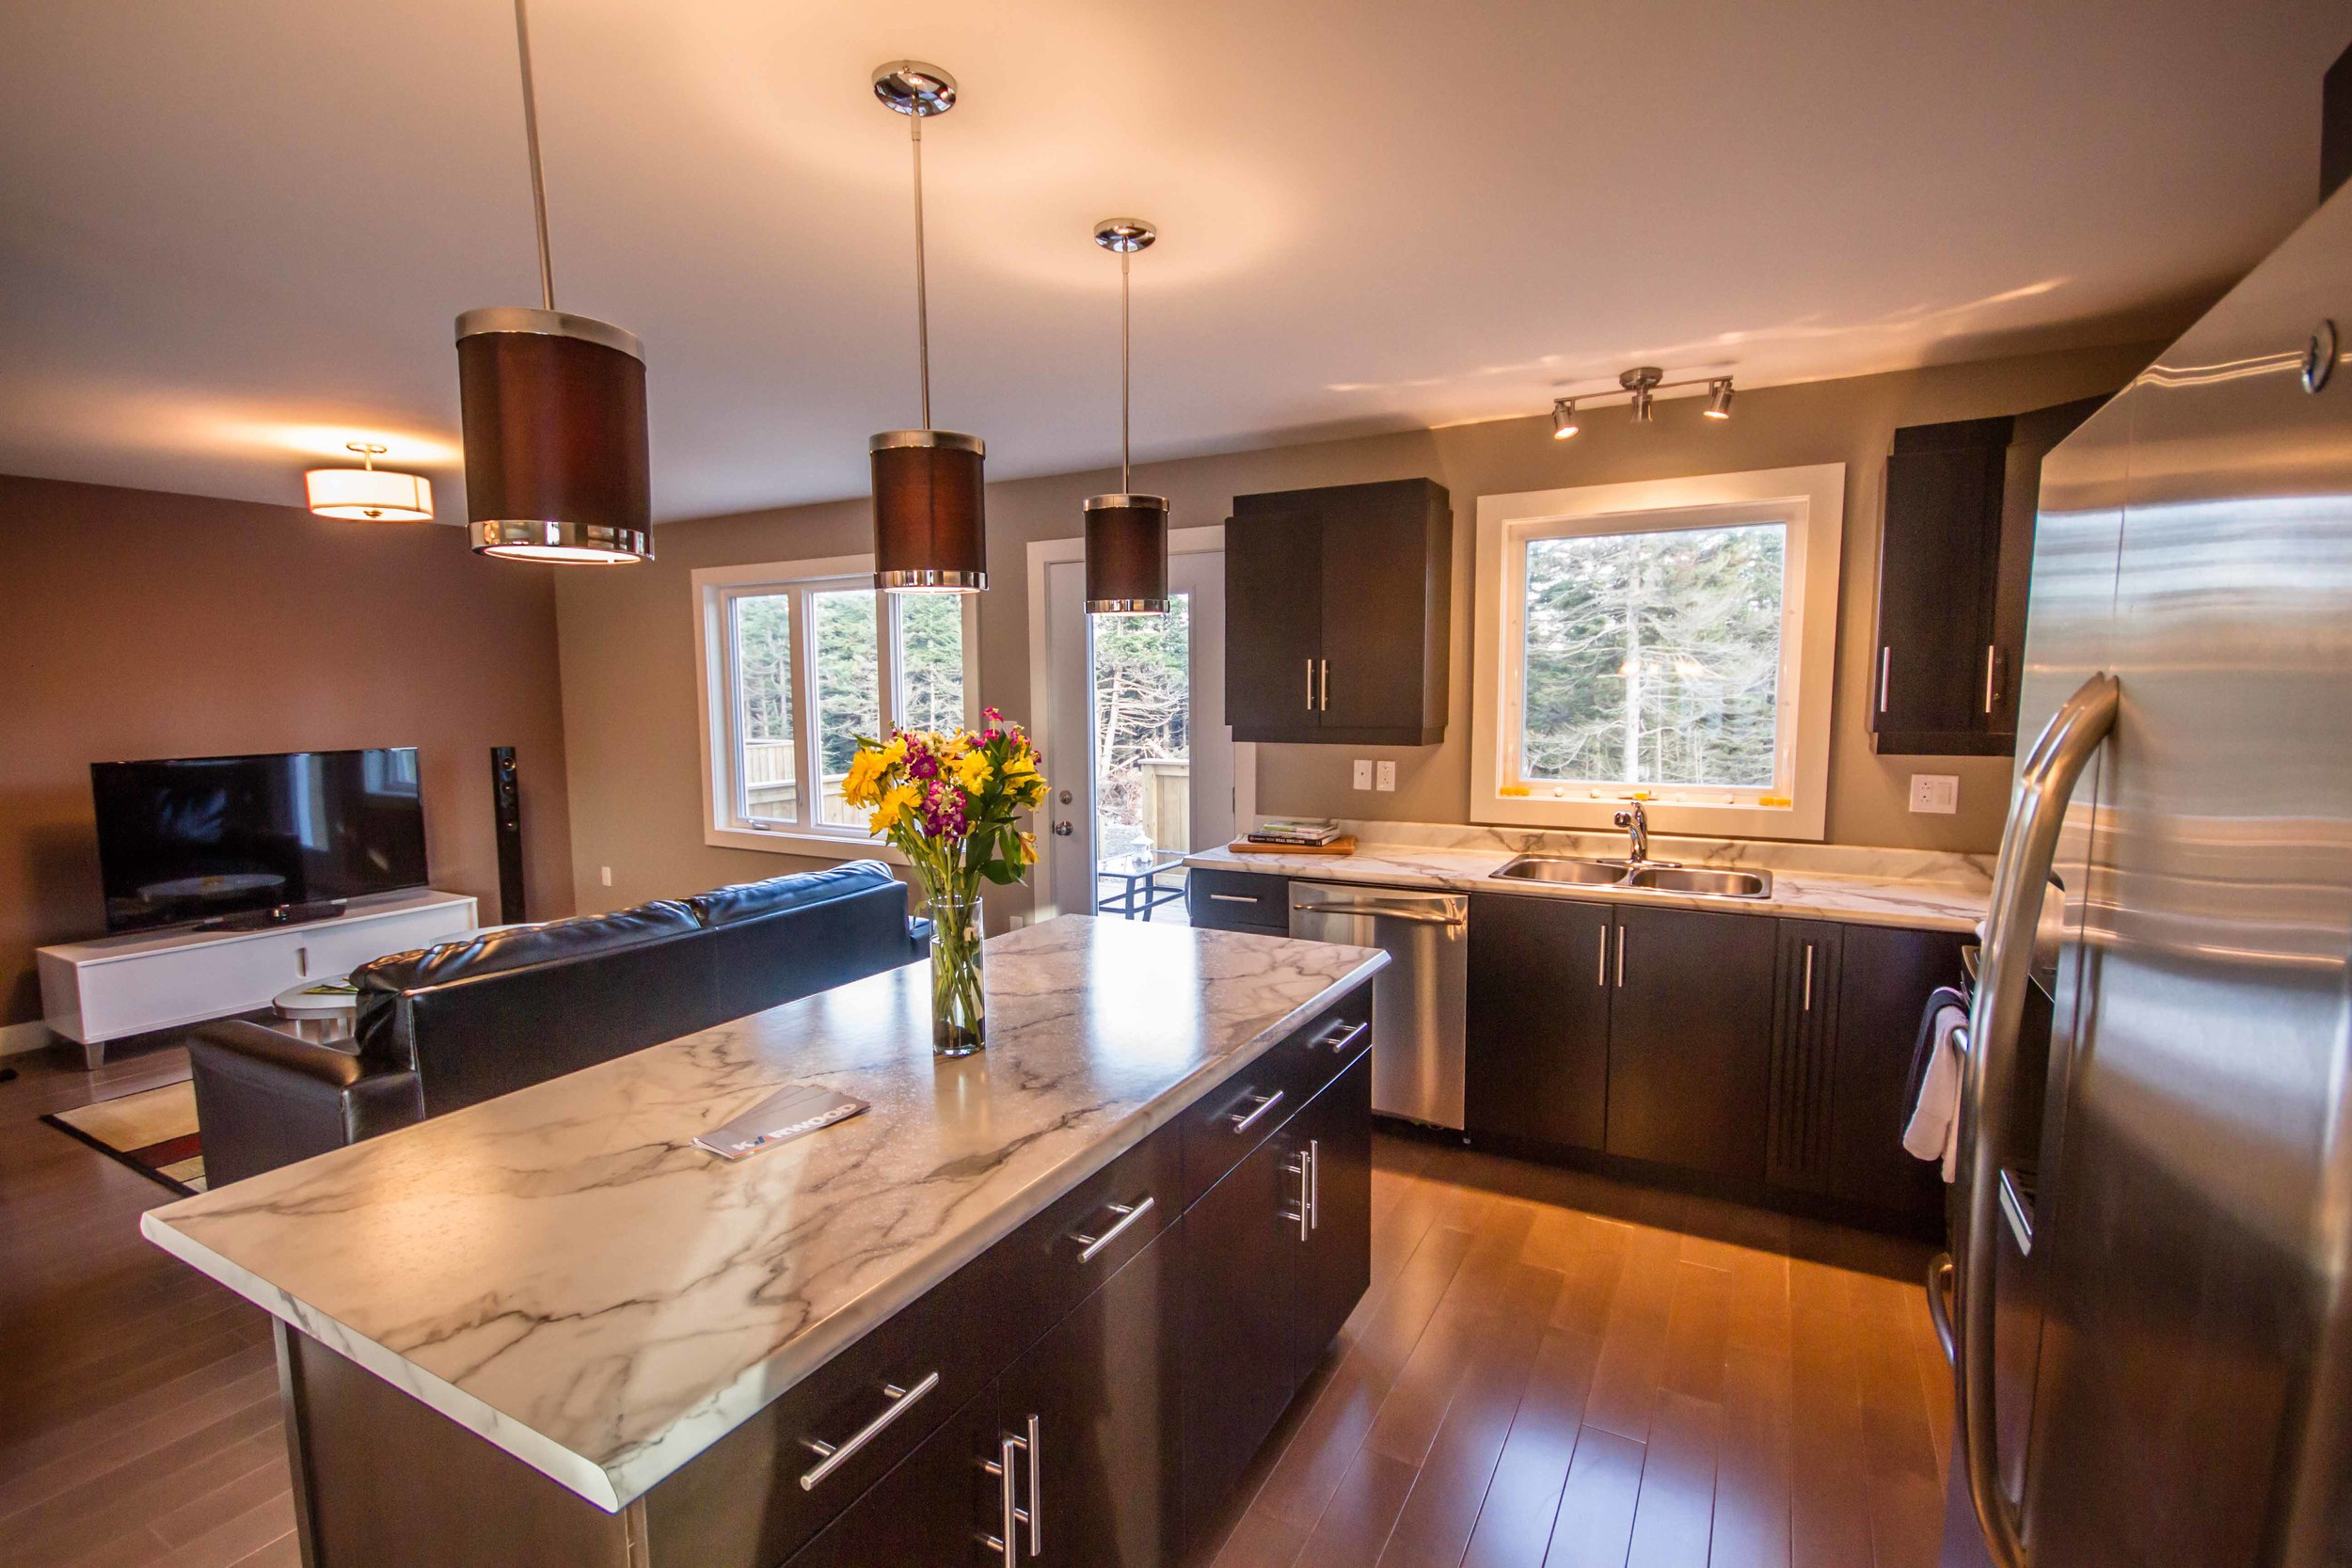 72 Kenai Crescent - Kitchen and Den.jpg